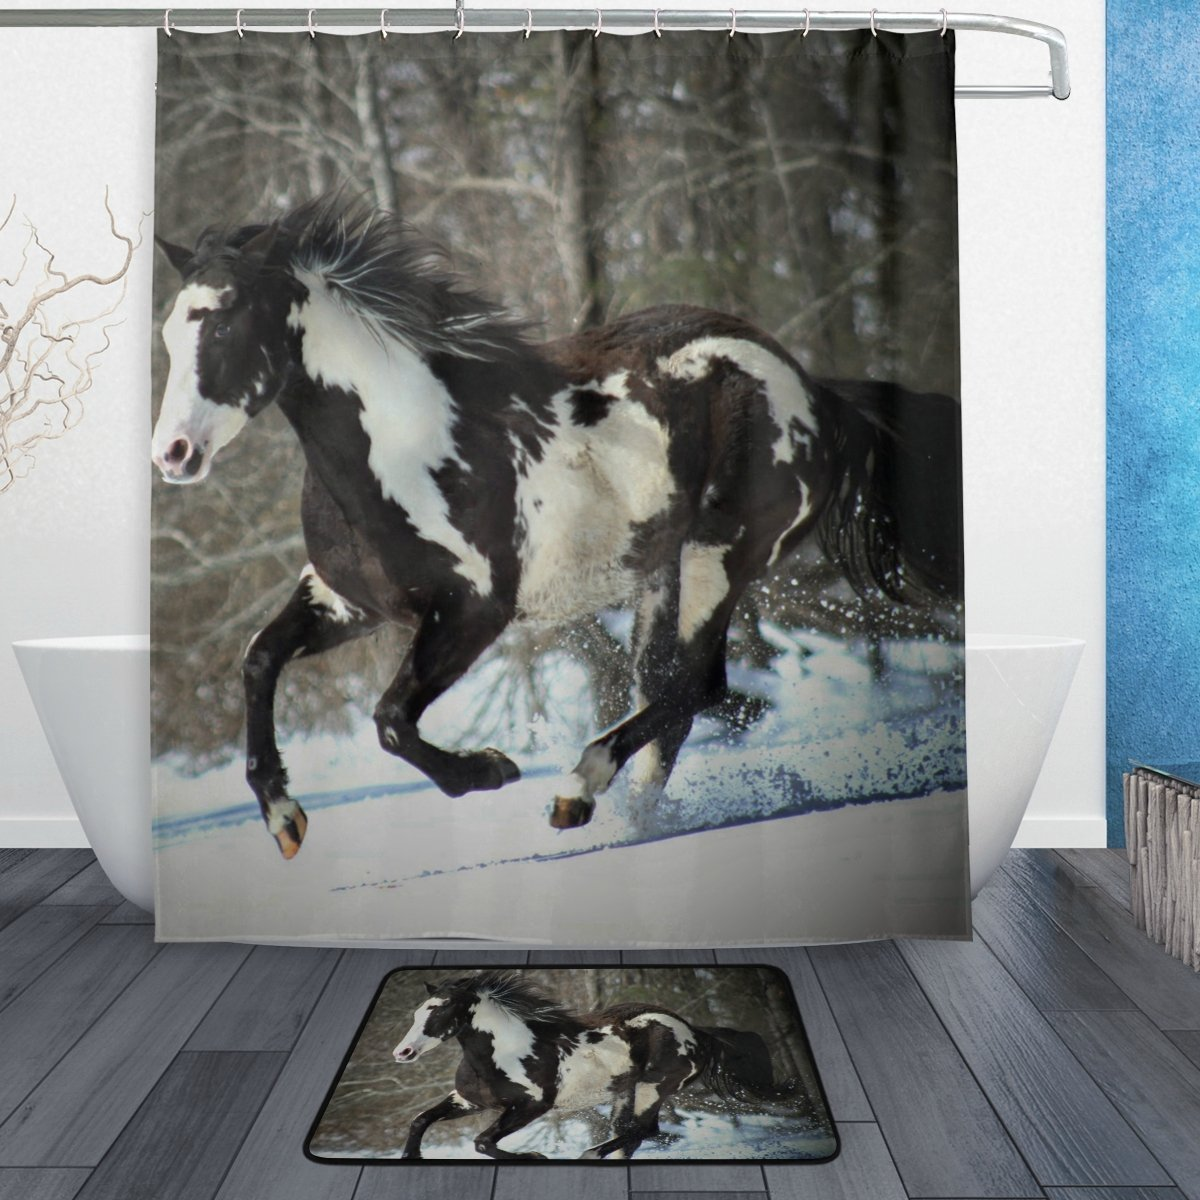 BAIHUISHOP Horse Winter Snow 3-Piece Bathroom Set, Machine Washable for Everyday Use,Includes 60x72 Inch Waterproof Shower Curtain, 12 Shower Hooks and 1 Non-slip Bathroom Rug Carpet - Set of 3